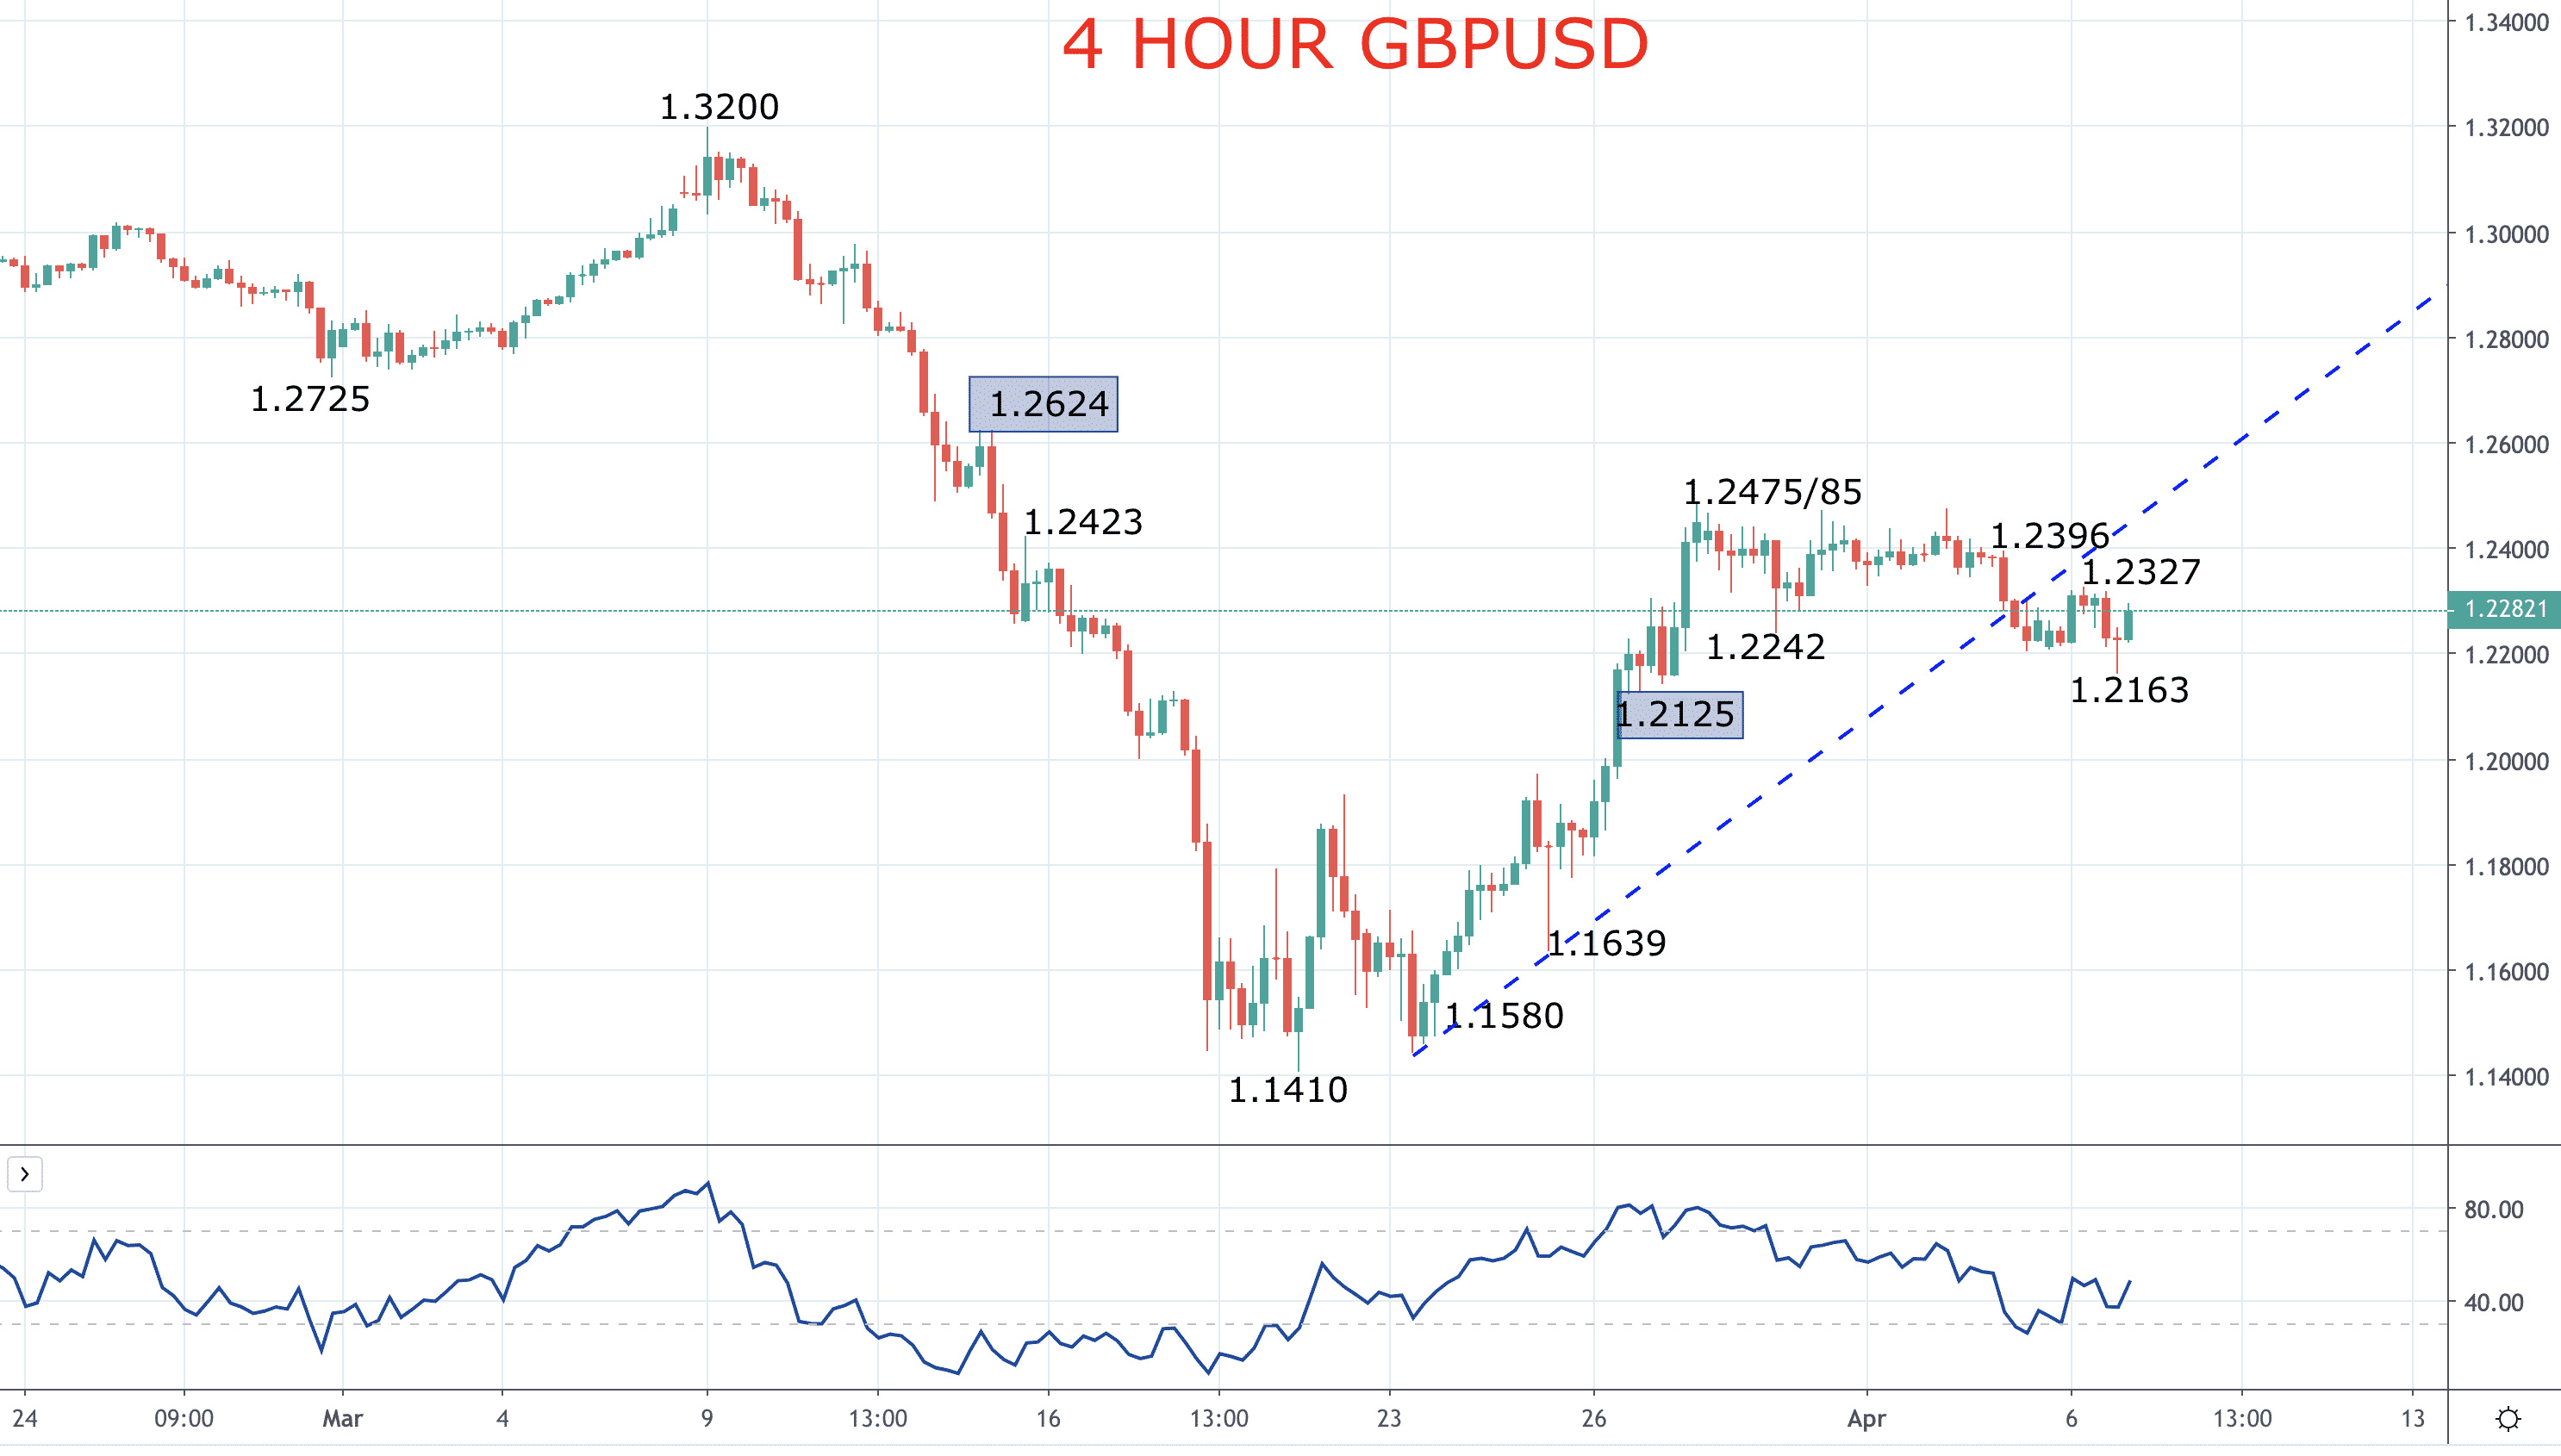 Pound aims higher – GBPUSD forecast Image